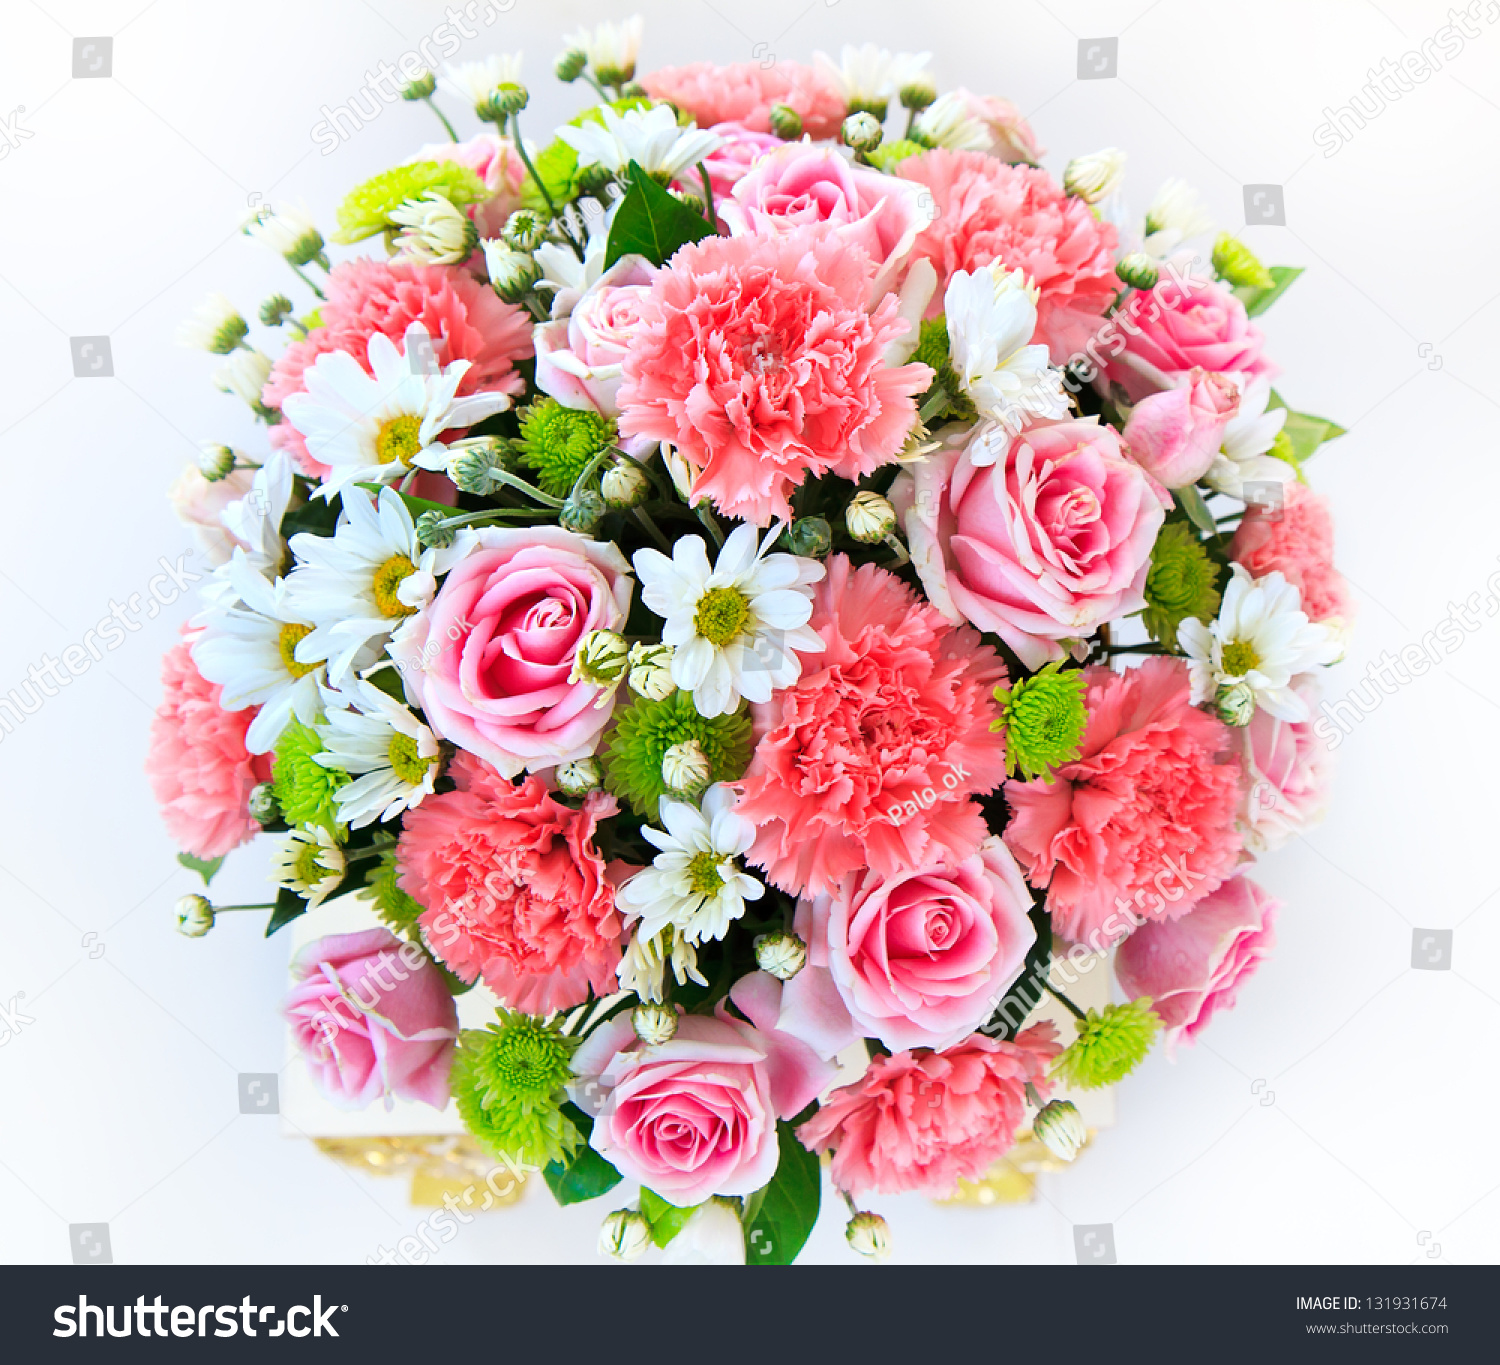 Beautiful bouquet flowers ready big wedding stock photo edit now beautiful bouquet of flowers ready for the big wedding ceremony izmirmasajfo